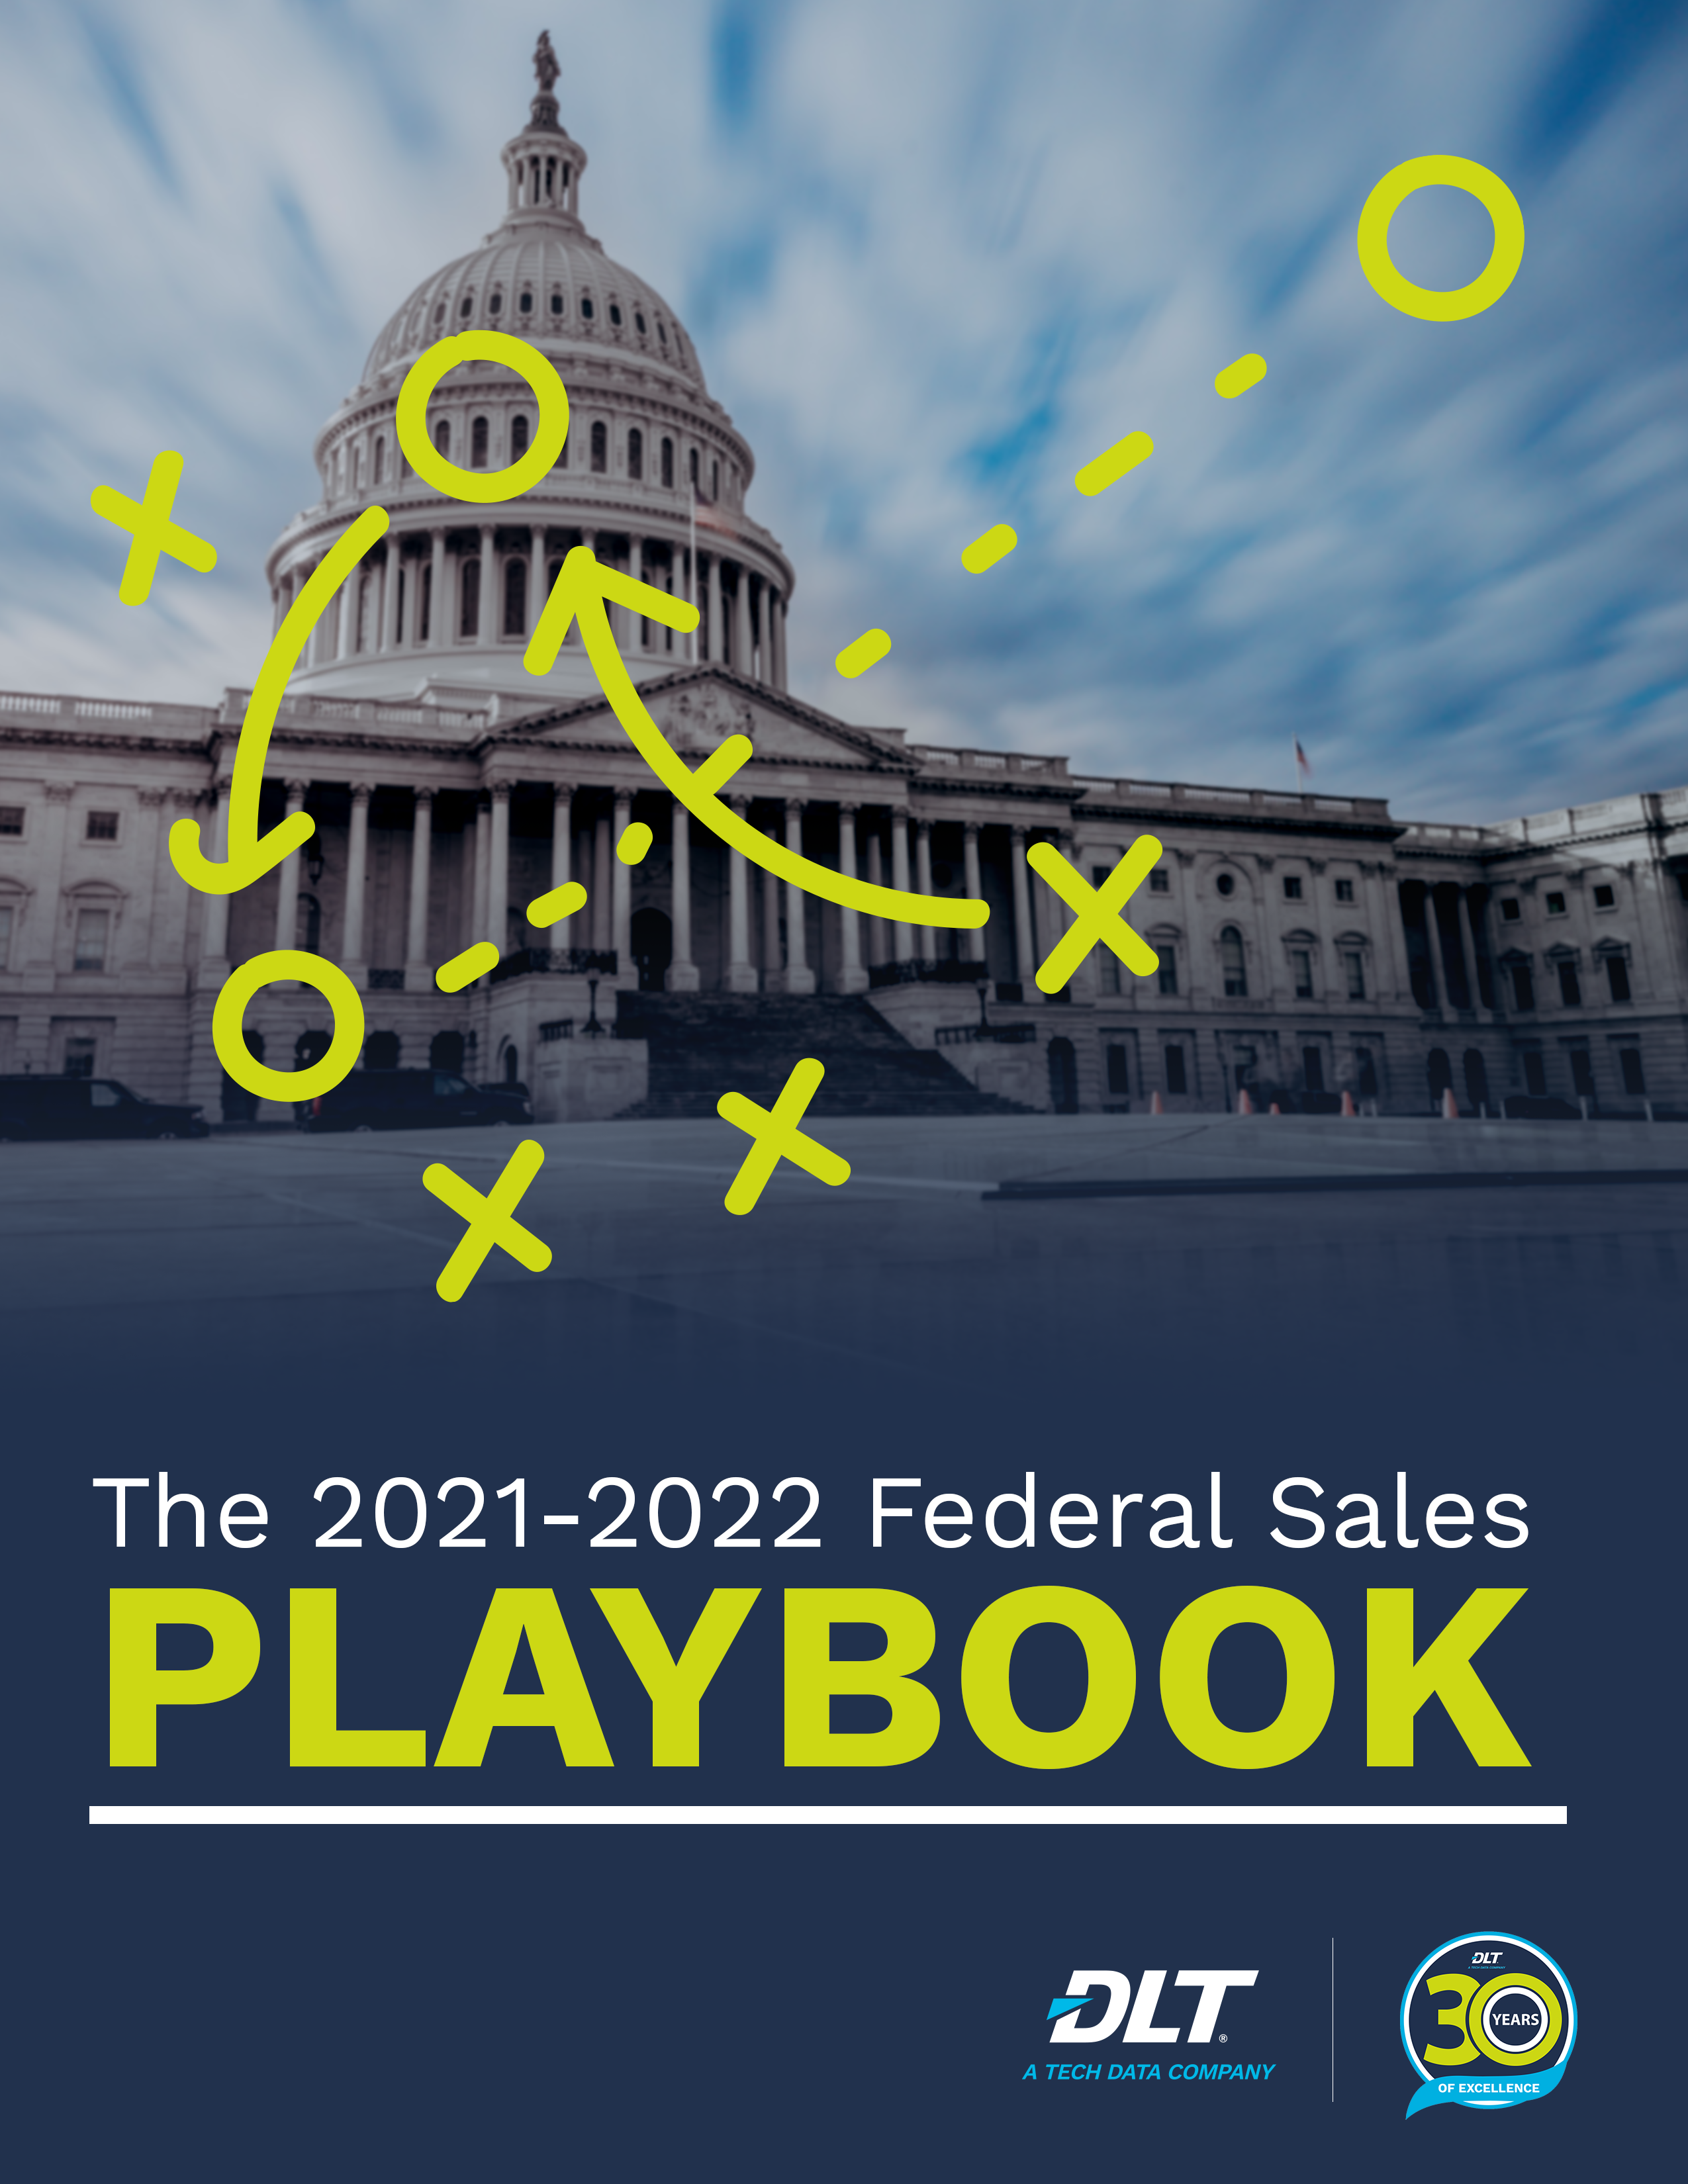 The 2021-2022 Federal Sales PLAYBOOK thumbnail